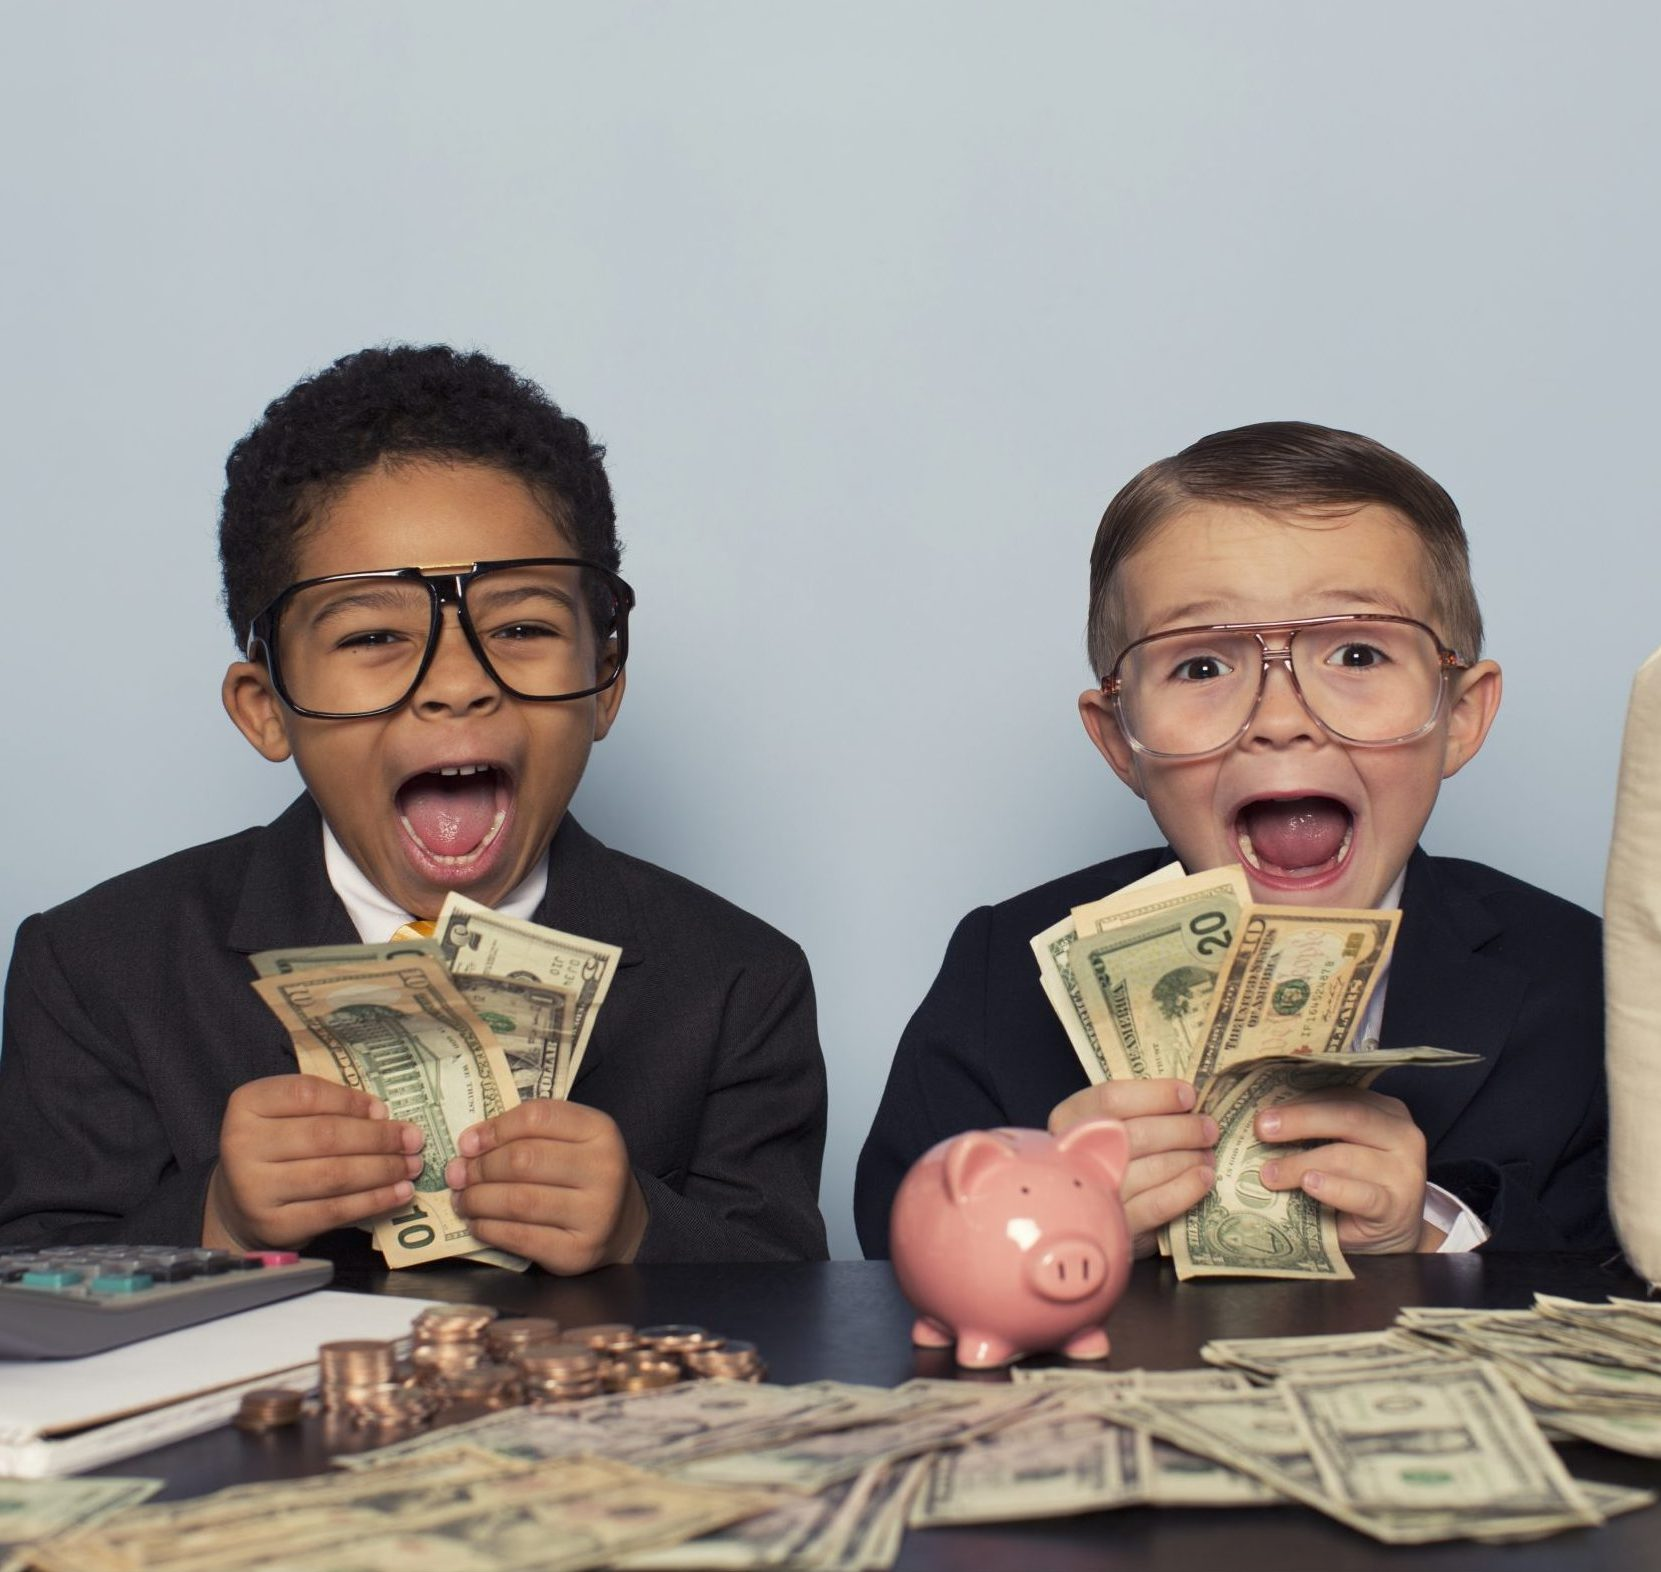 Children with Money Photo